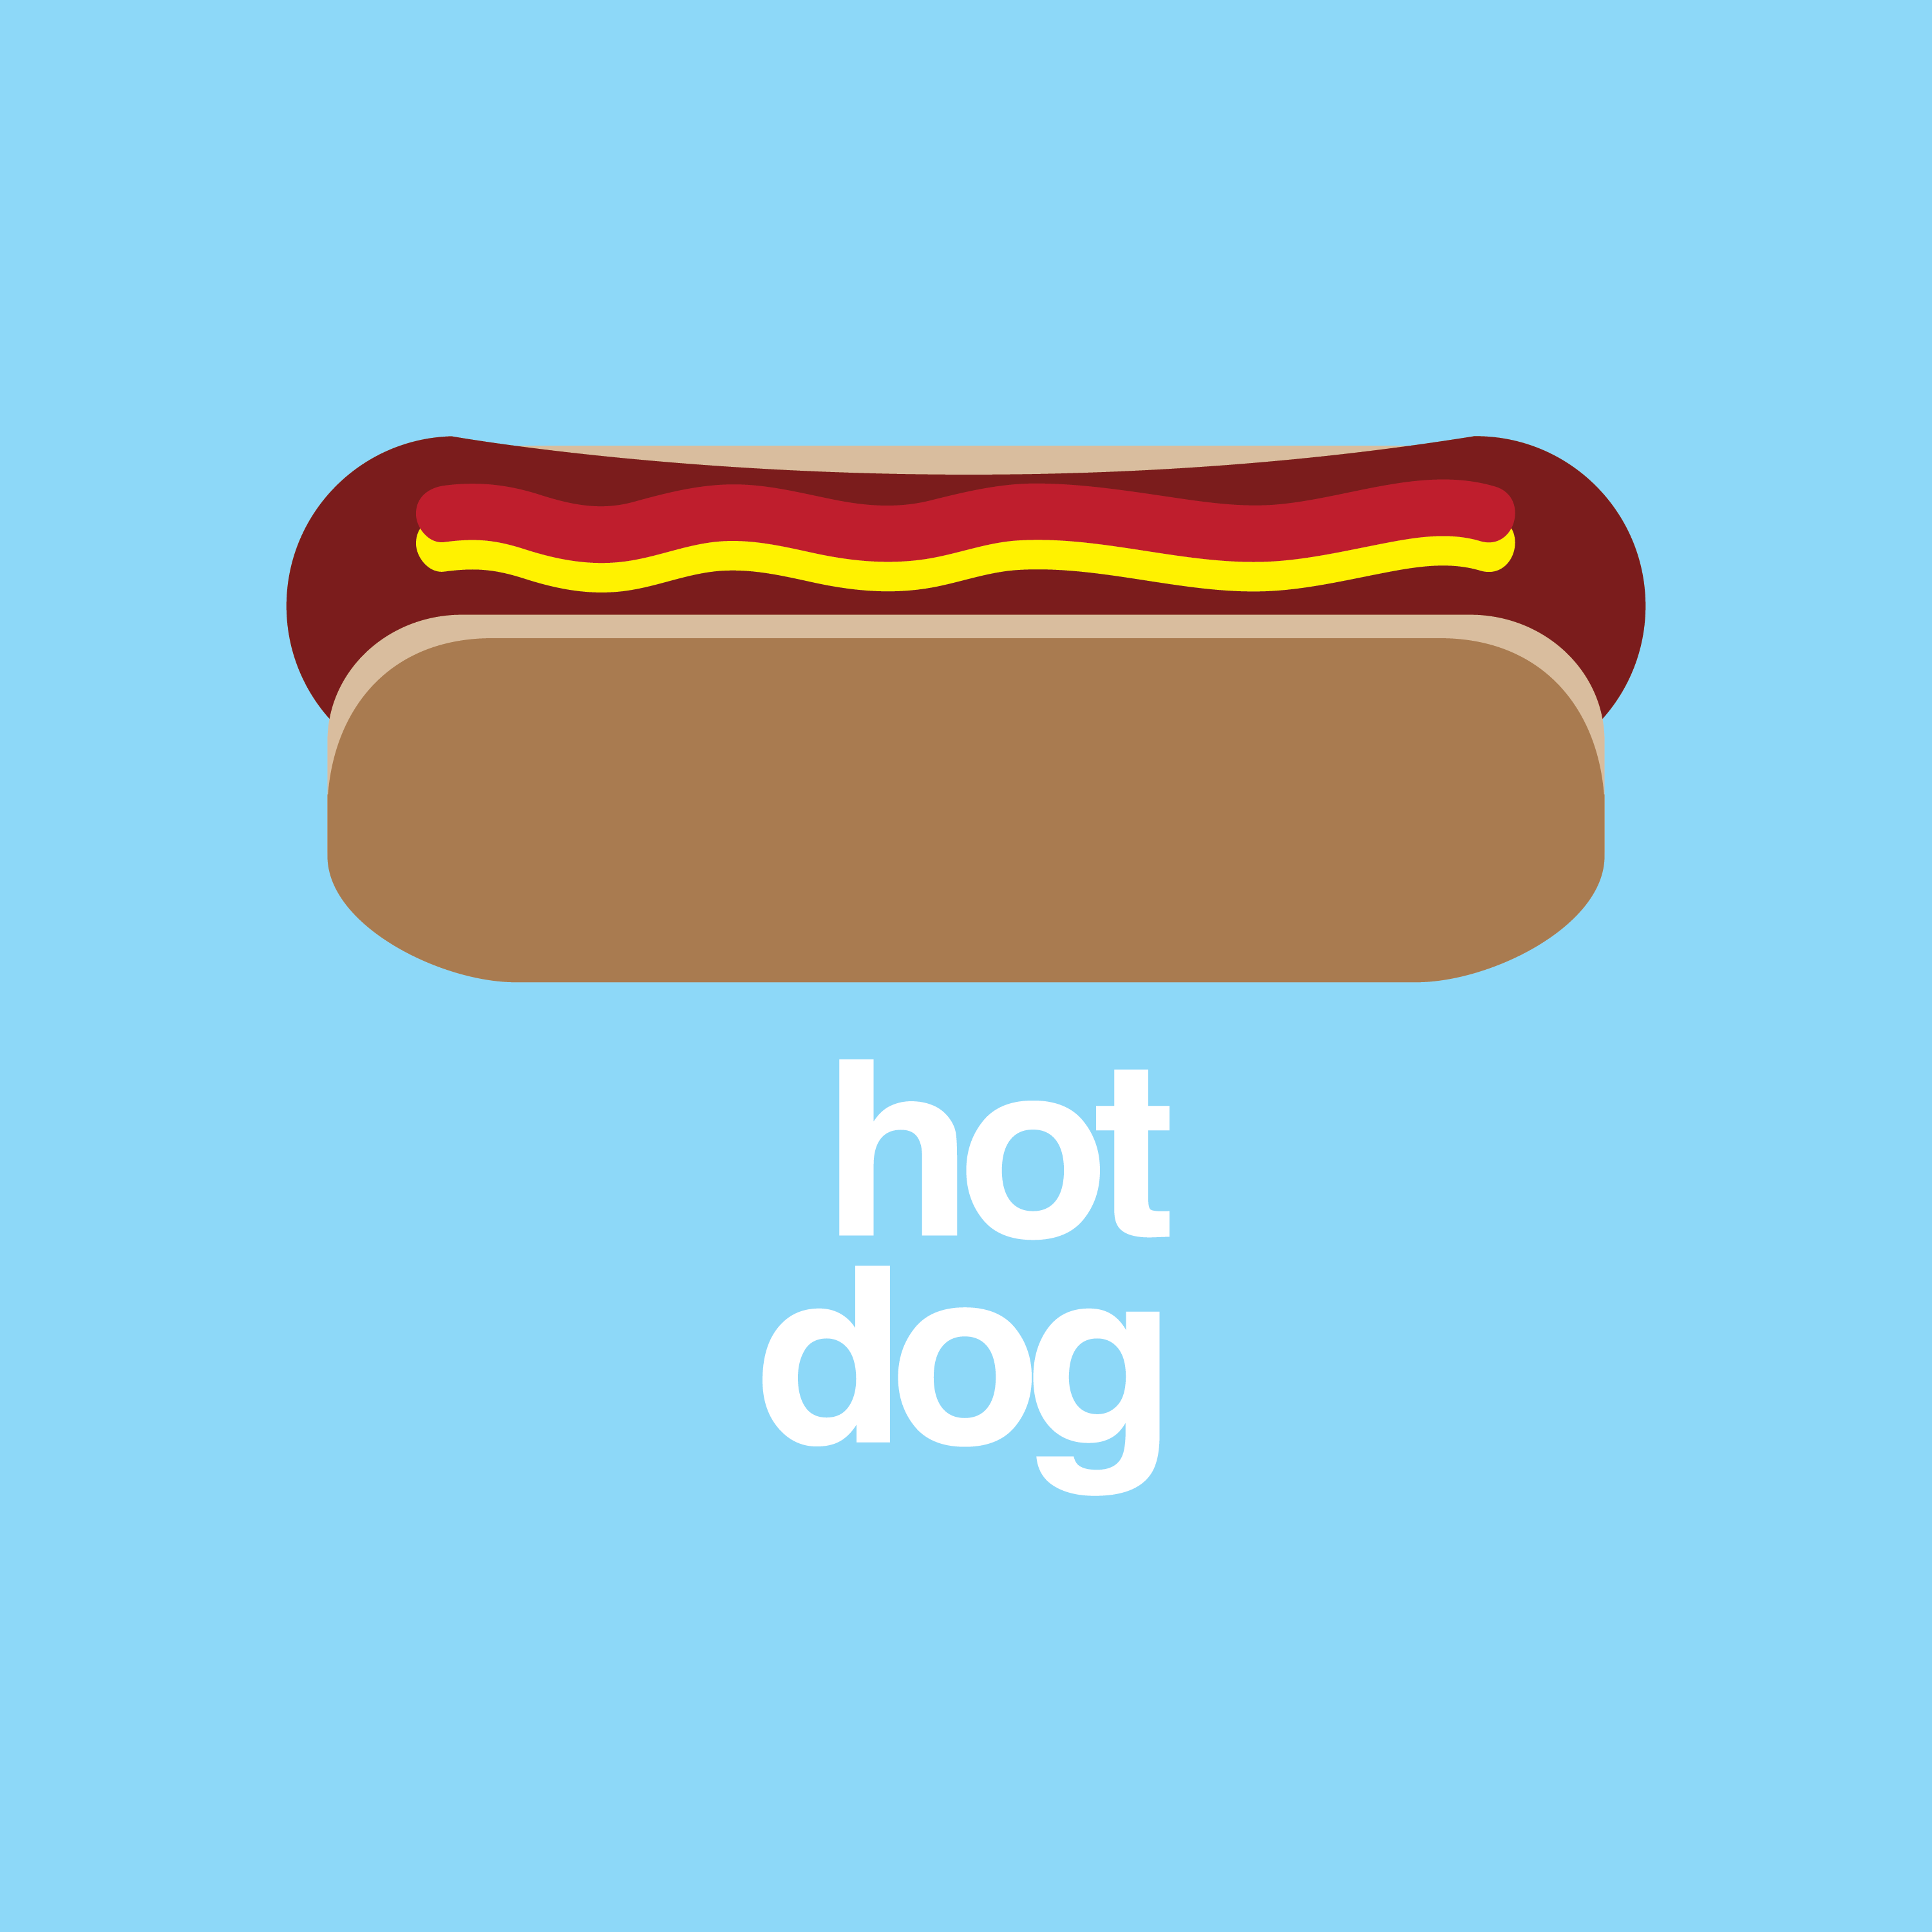 Other Word For Hot Dog